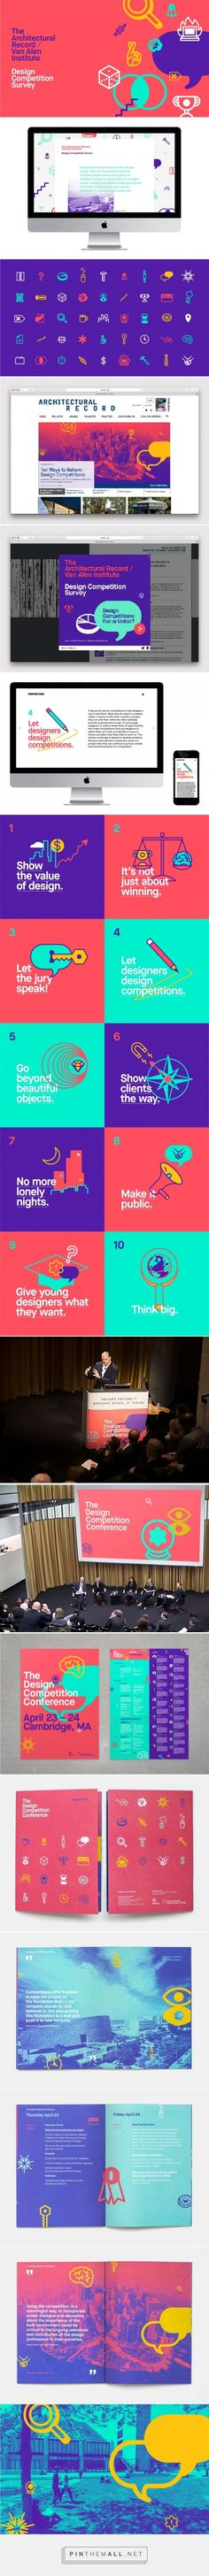 Bruce Mau Design | The Design Competition Survey & Conference | Work http://www.brucemaudesign.com/work?project_id=118 - created via